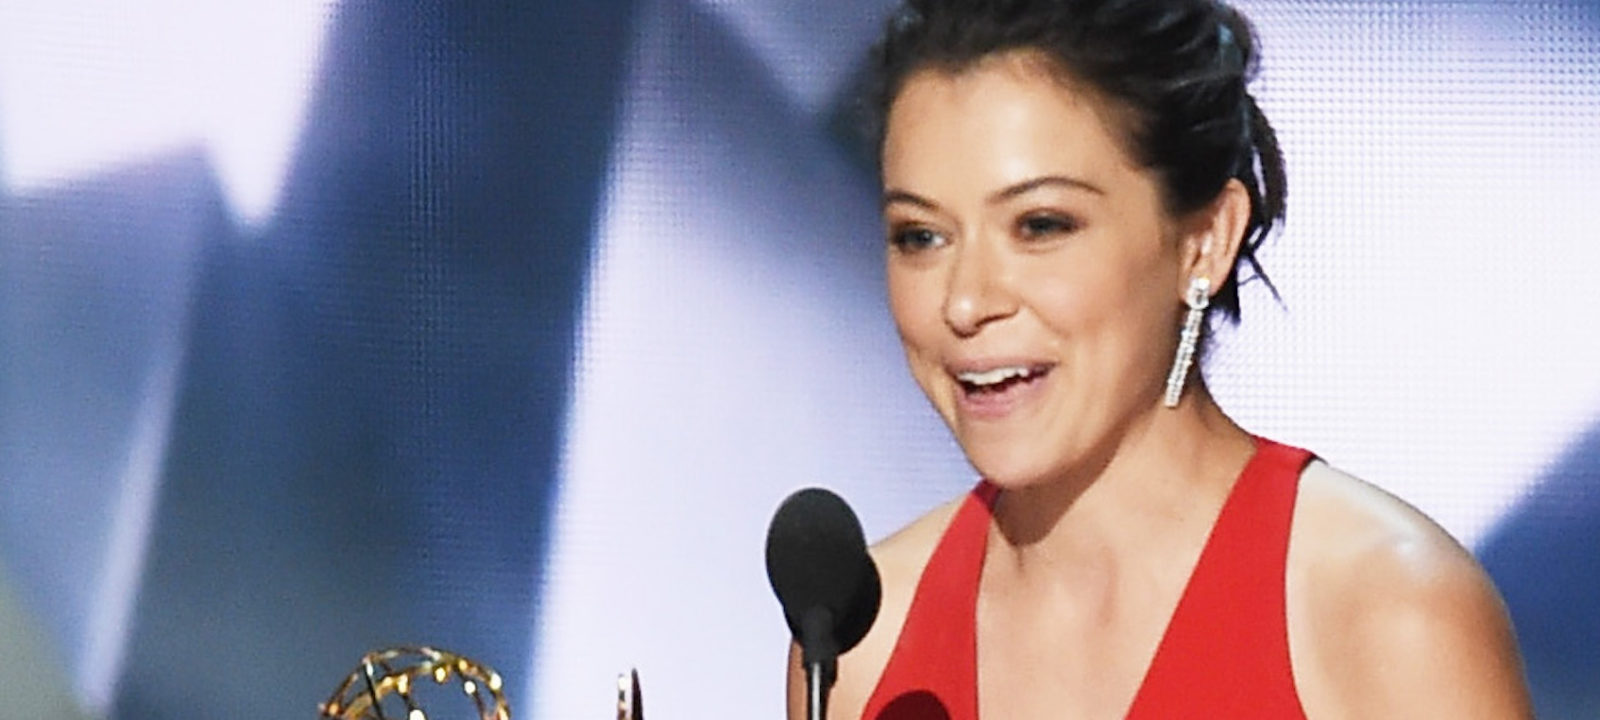 Actress Tatiana Maslany accepts Outstanding Lead Actress in a Drama Series for 'Orphan Black' onstage during the 68th Annual Primetime Emmy Awards at Microsoft Theater on September 18, 2016 in Los Angeles, California.